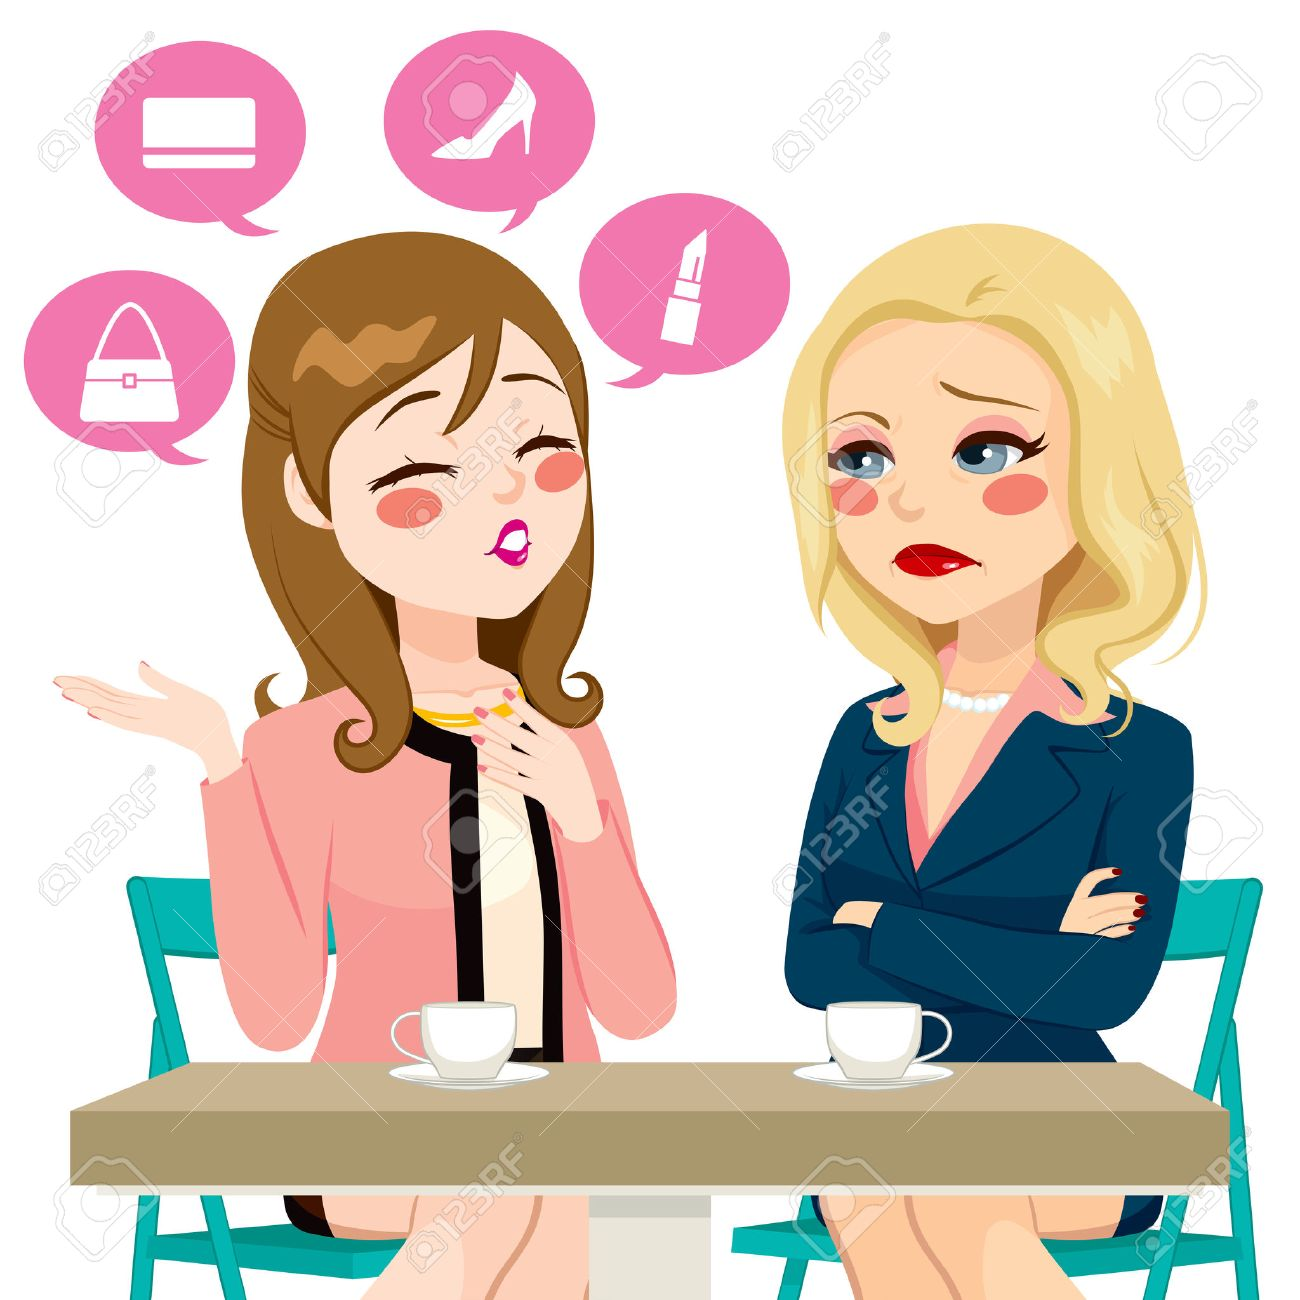 Young girl gossiping boasting about her life having coffee with adult woman in disbelief or disappointment - 57839525